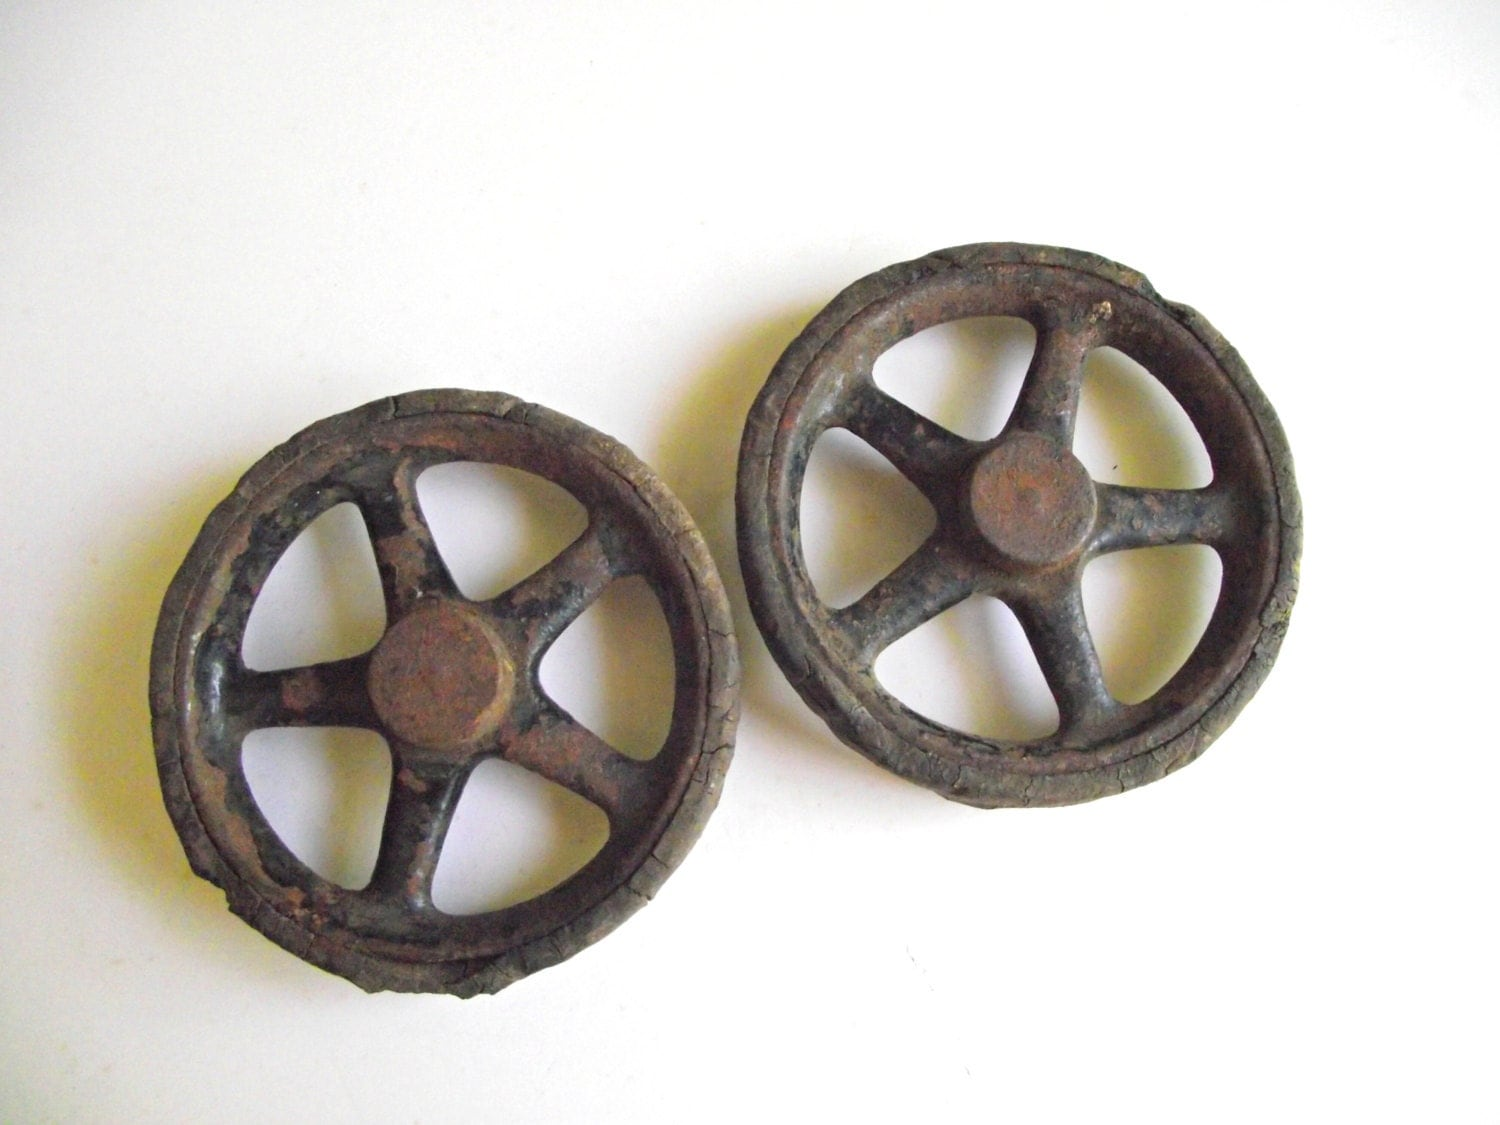 Antique Toy Wheels Cast Iron And Rubber Industrial Salvage